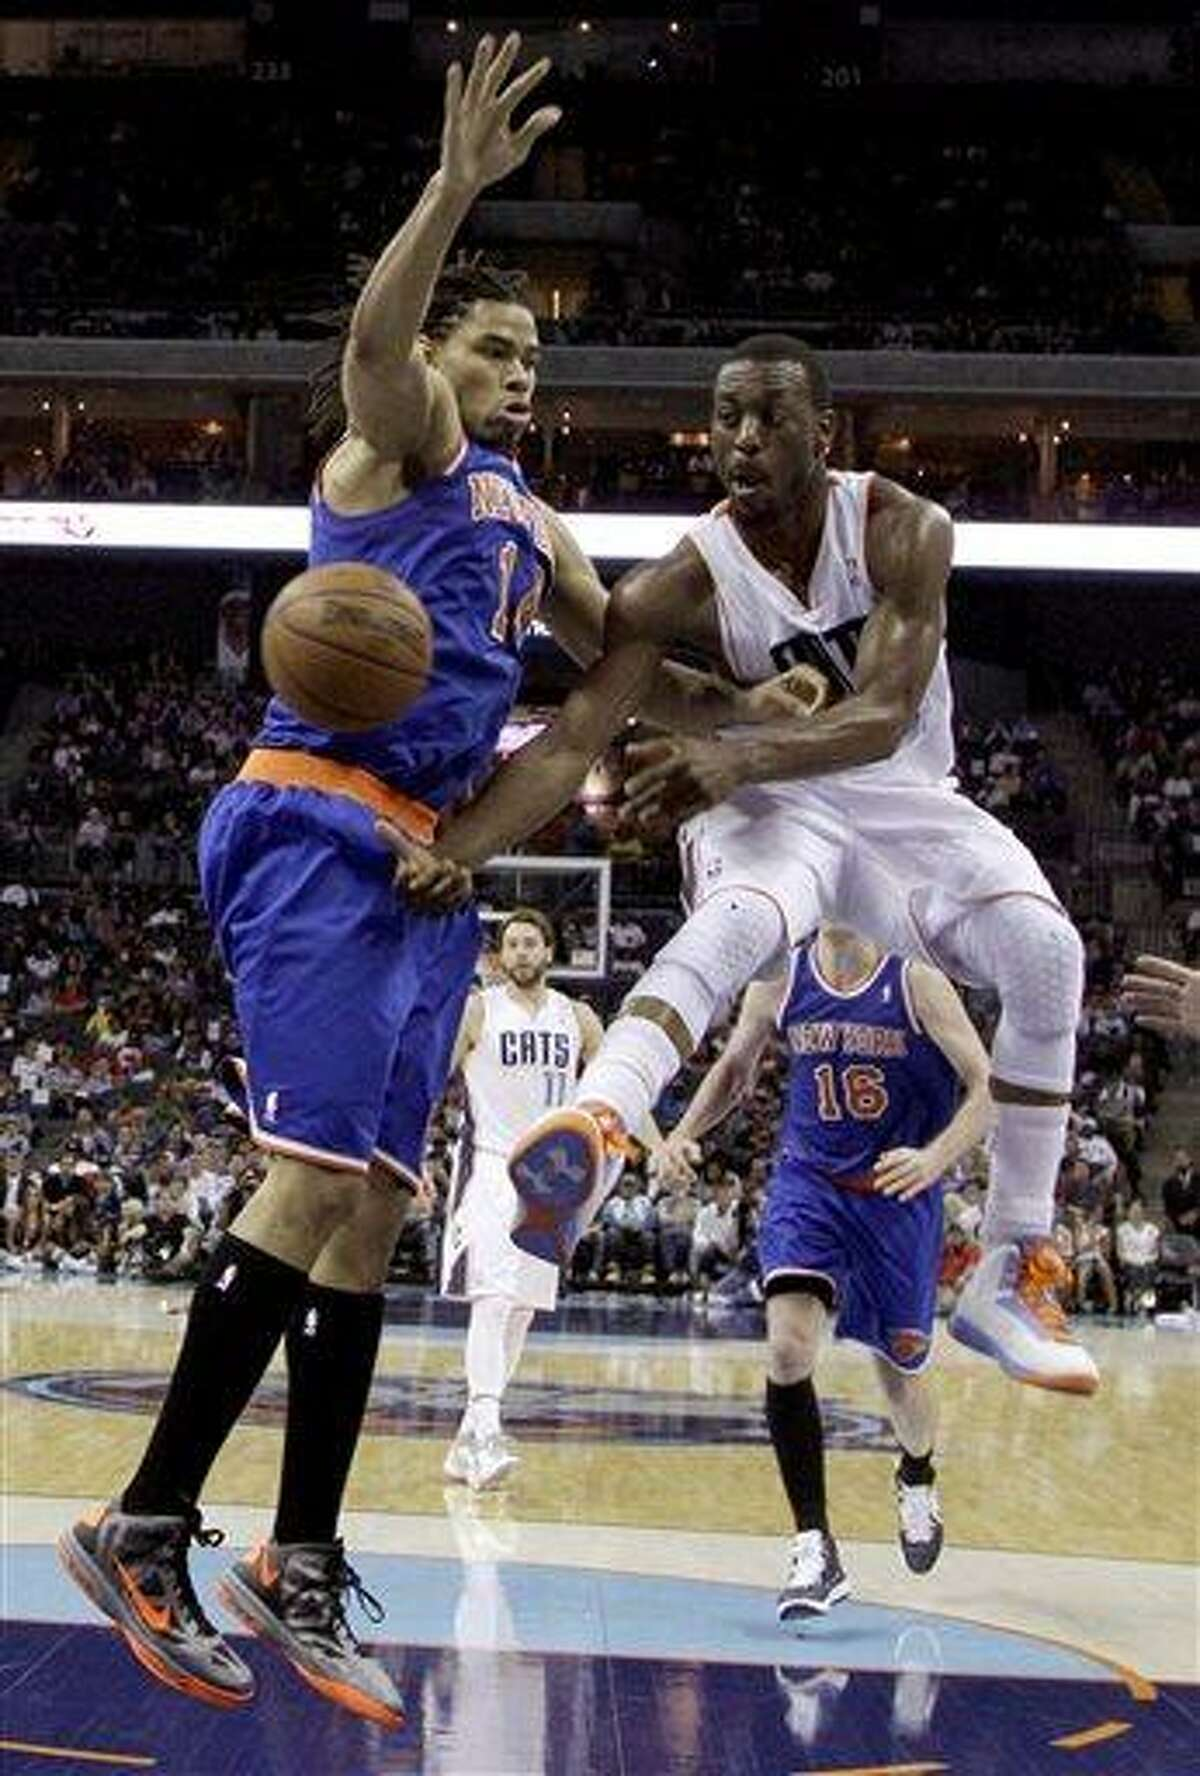 Charlotte Bobcats' Kemba Walker, right, passes the ball around New York Knicks' Chris Copeland, left, during the second half of an NBA basketball game in Charlotte, N.C., Monday, April 15, 2013. The Bobcats 106-95. (AP Photo/Chuck Burton)